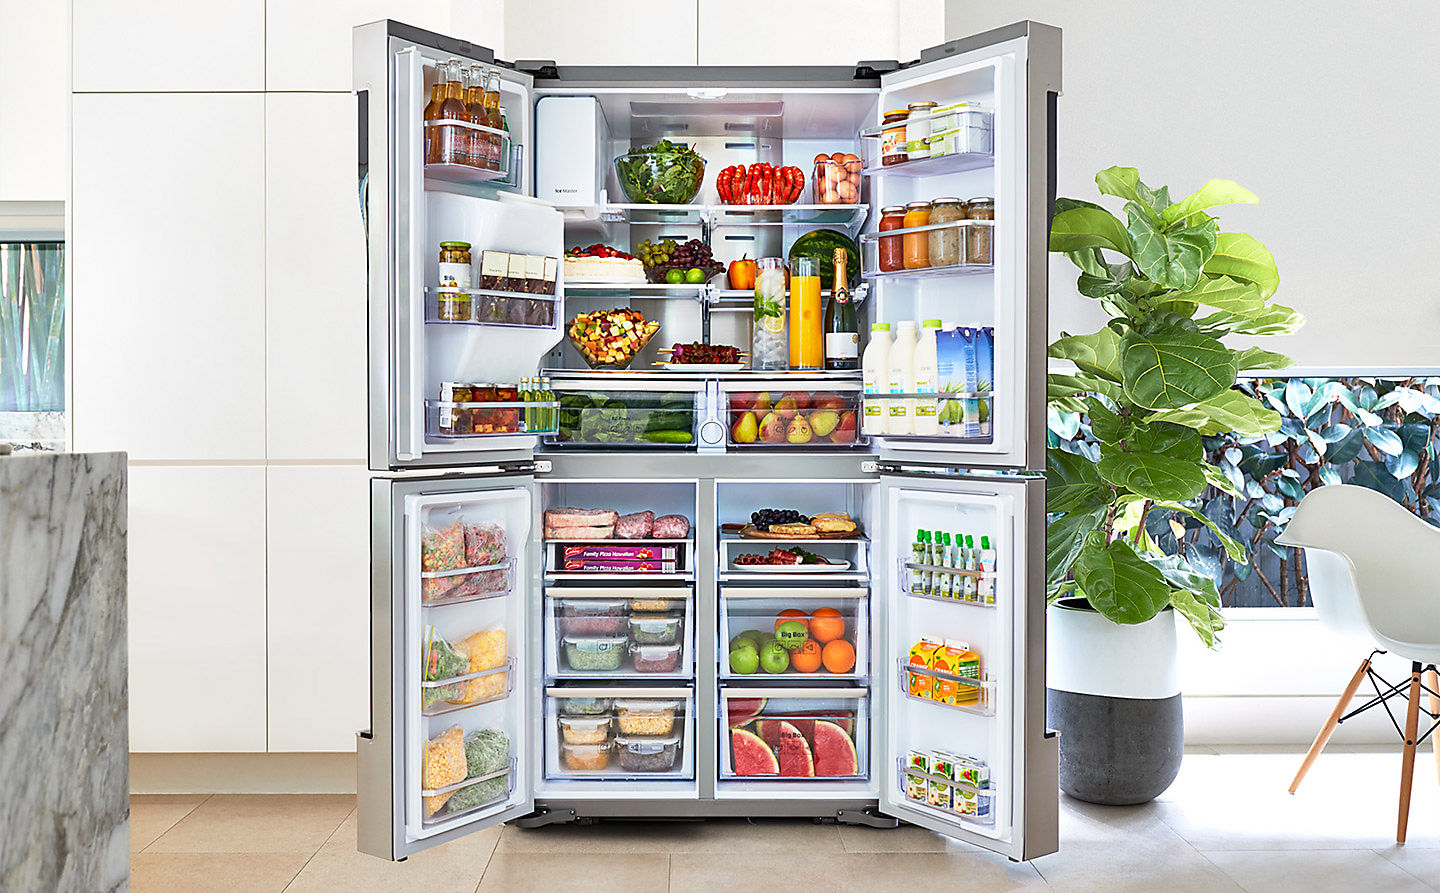 Samsung Fridge Repair Melbourne Refrigerator Type Of Organizational